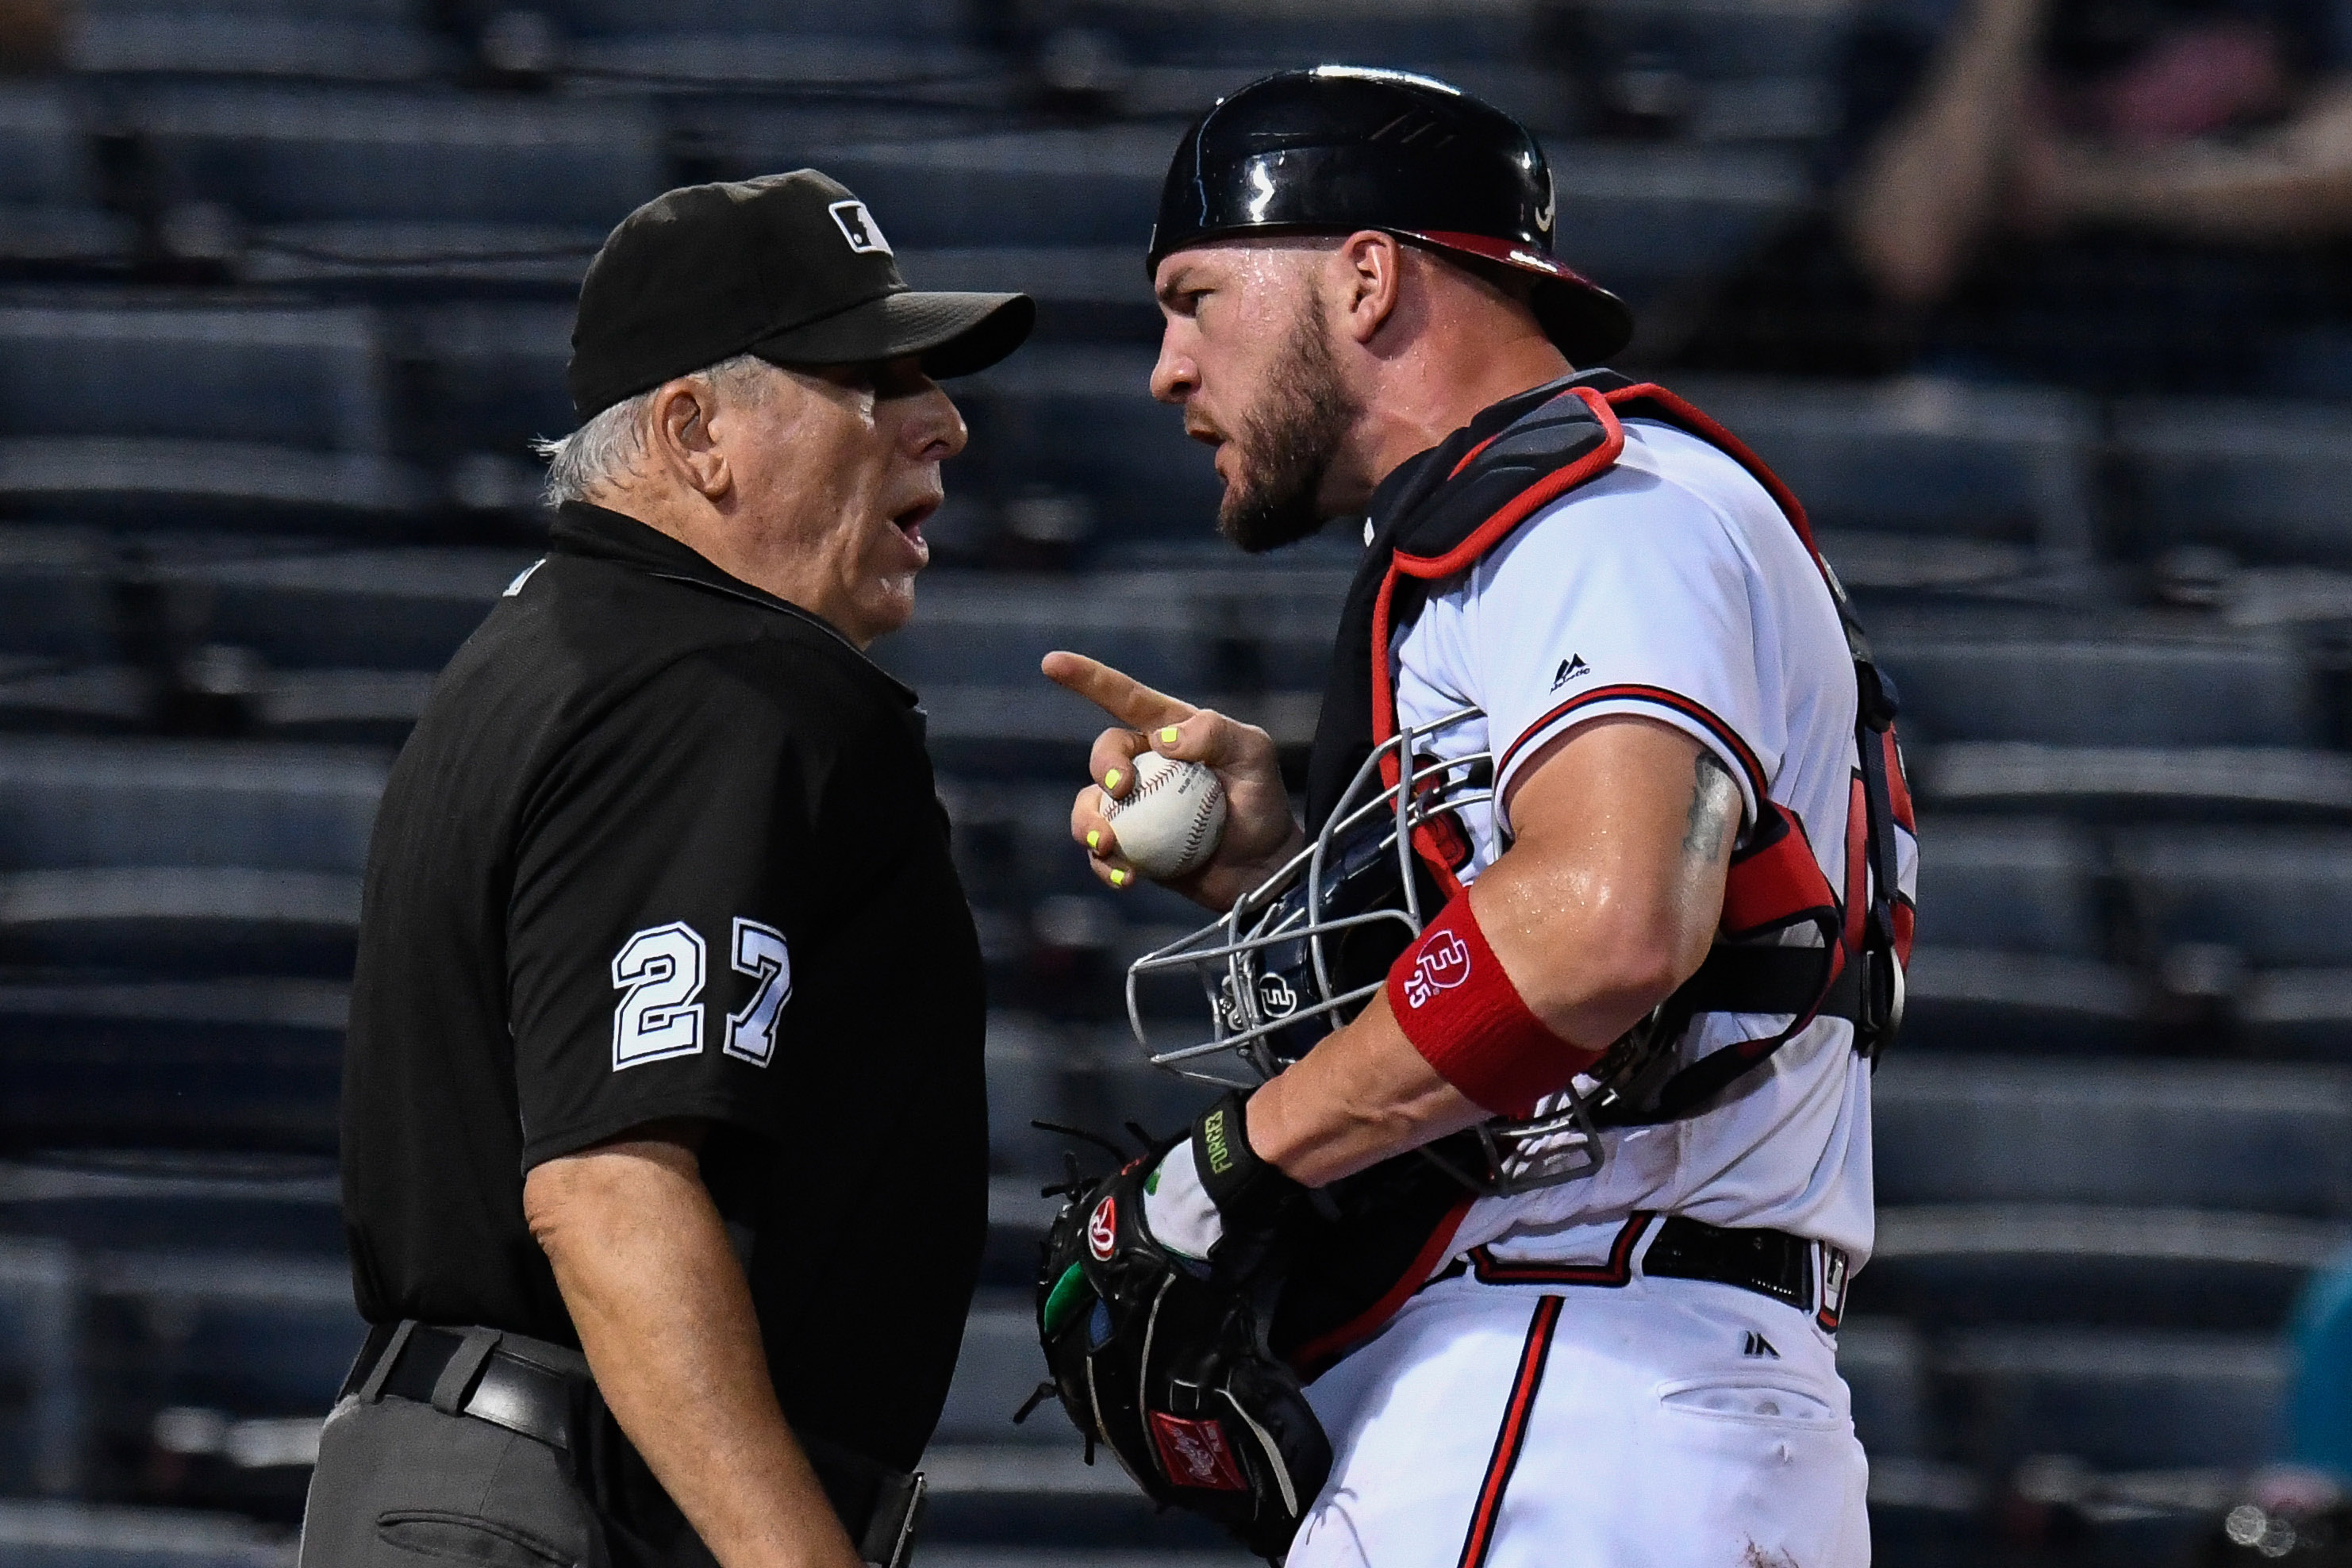 My Top 5 Atlanta Braves Brawls and Ejections of All-Time